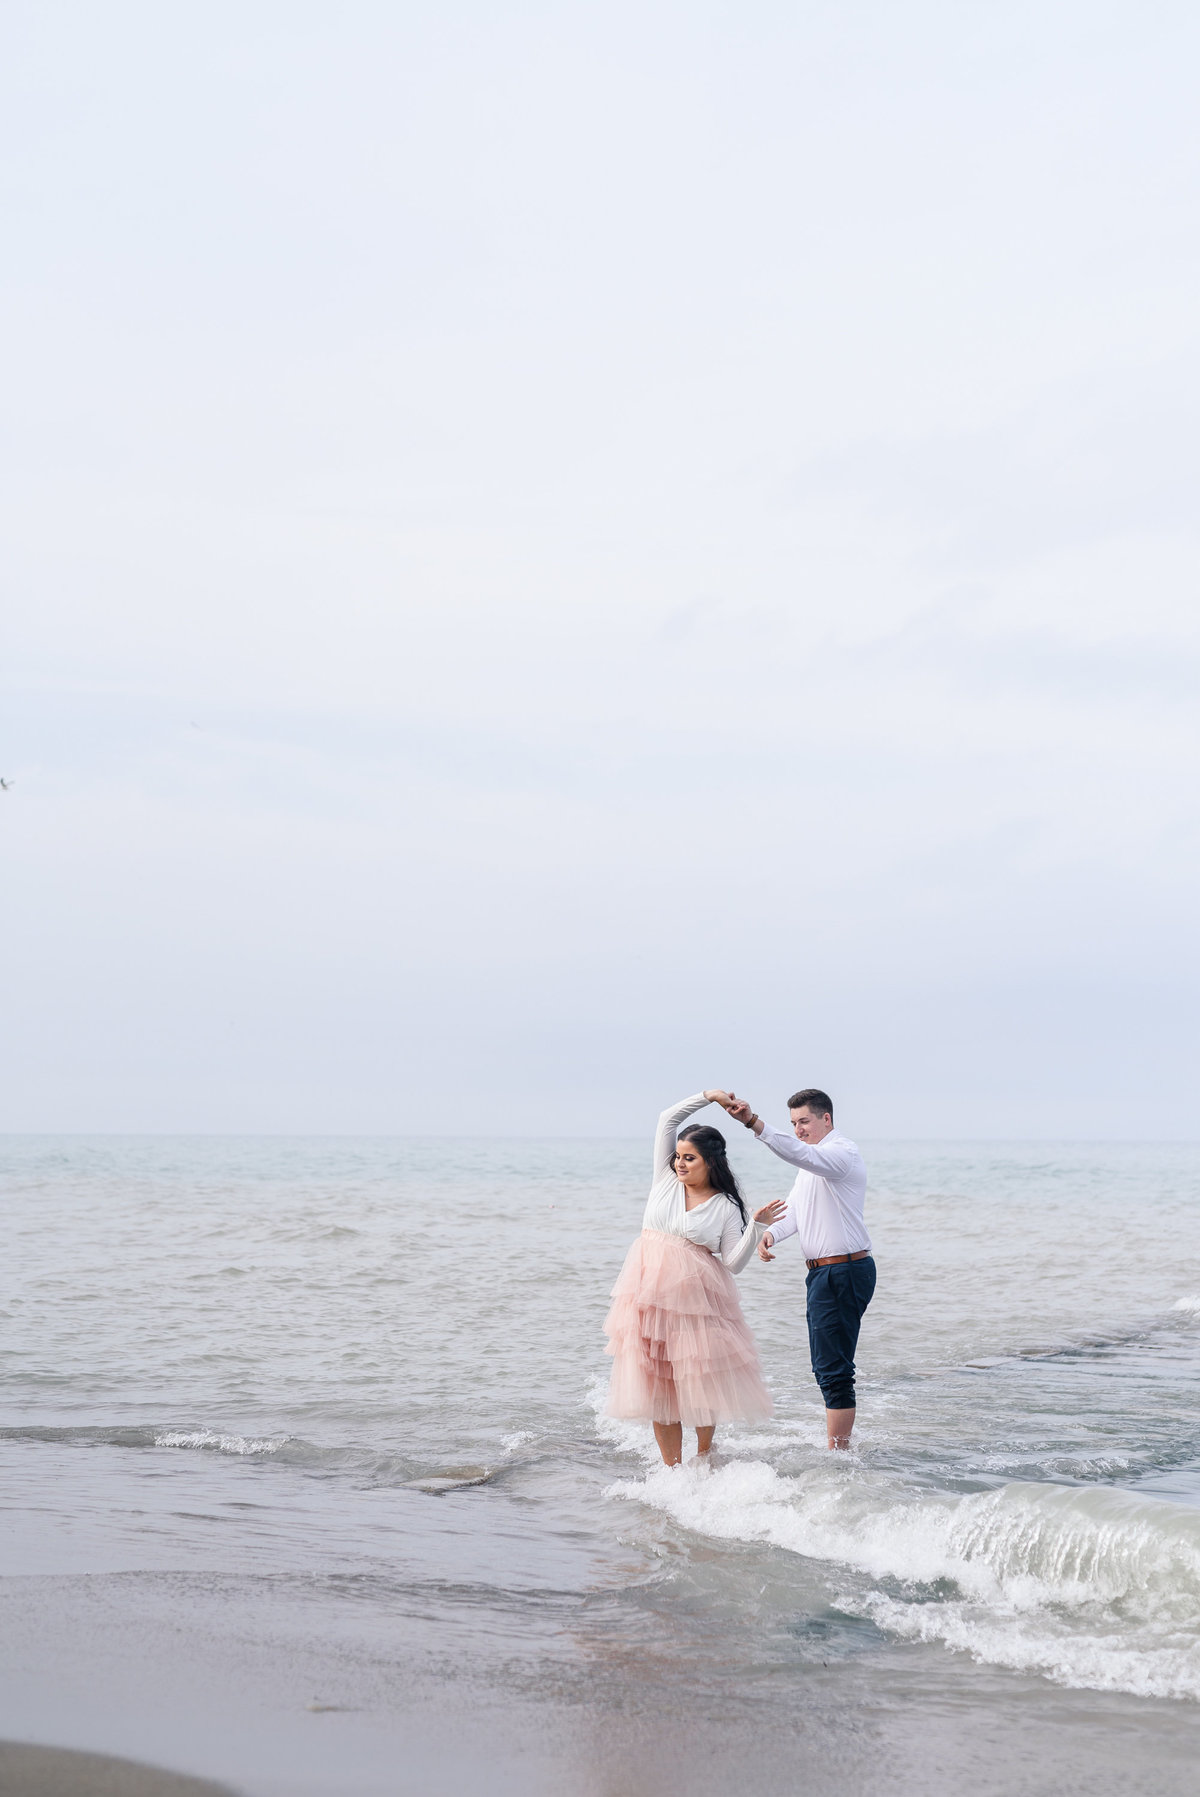 atwater-beach-engagement-milwaukee-the-paper-elephant-030